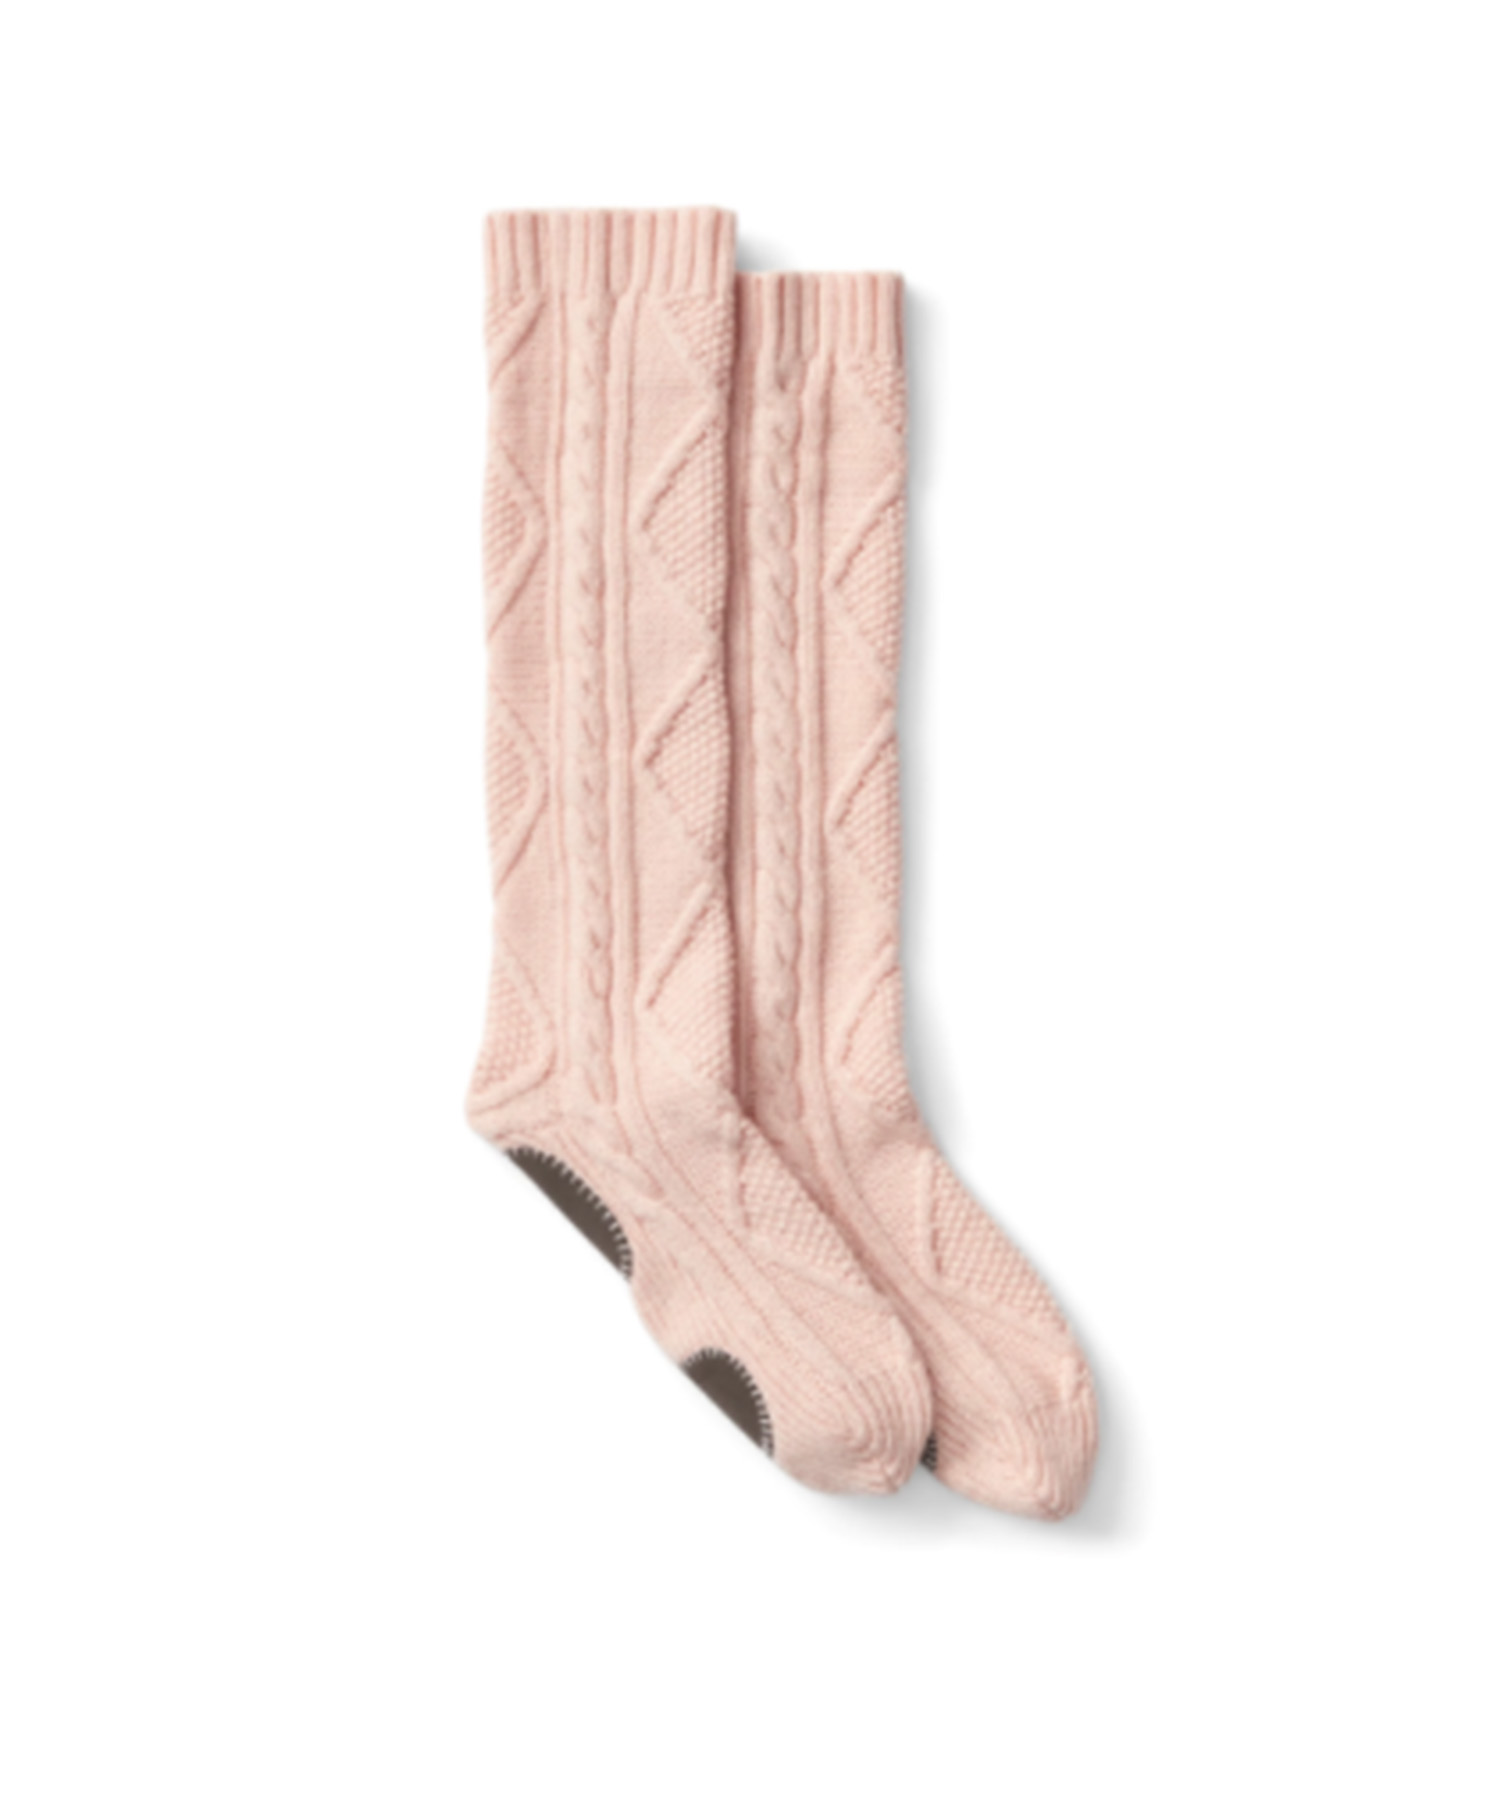 Merino Wool Cable-Knit Crew Socks